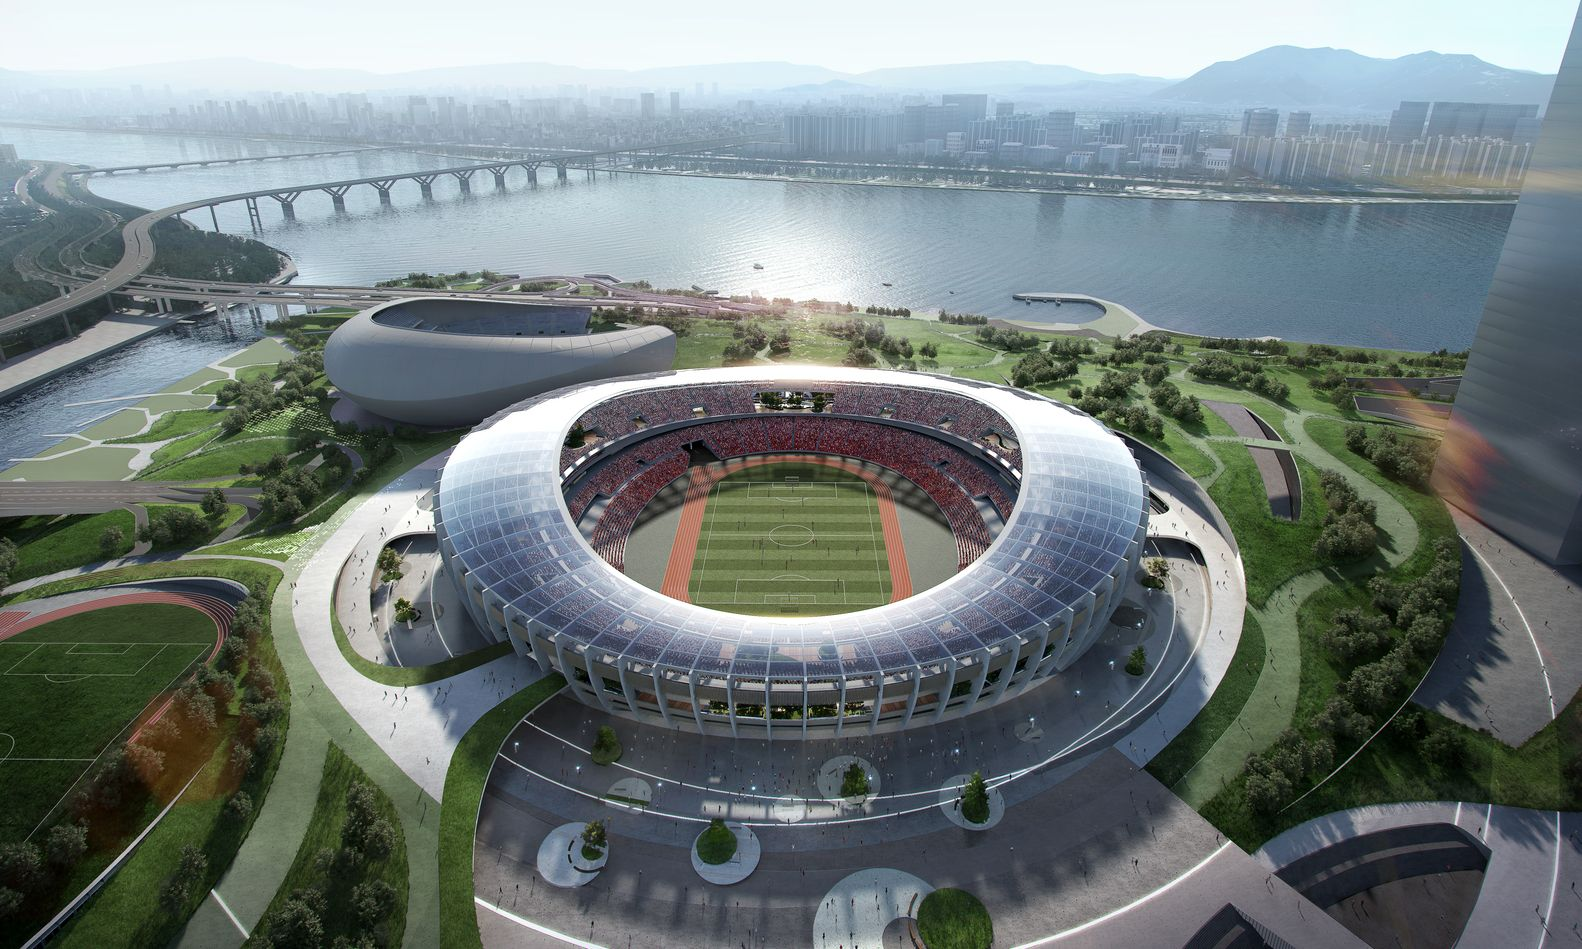 Gallery Of Winning Design Revealed For New Complex Around Seoul S Olympic Stadium 1 Stadium Amazing Architecture Complex